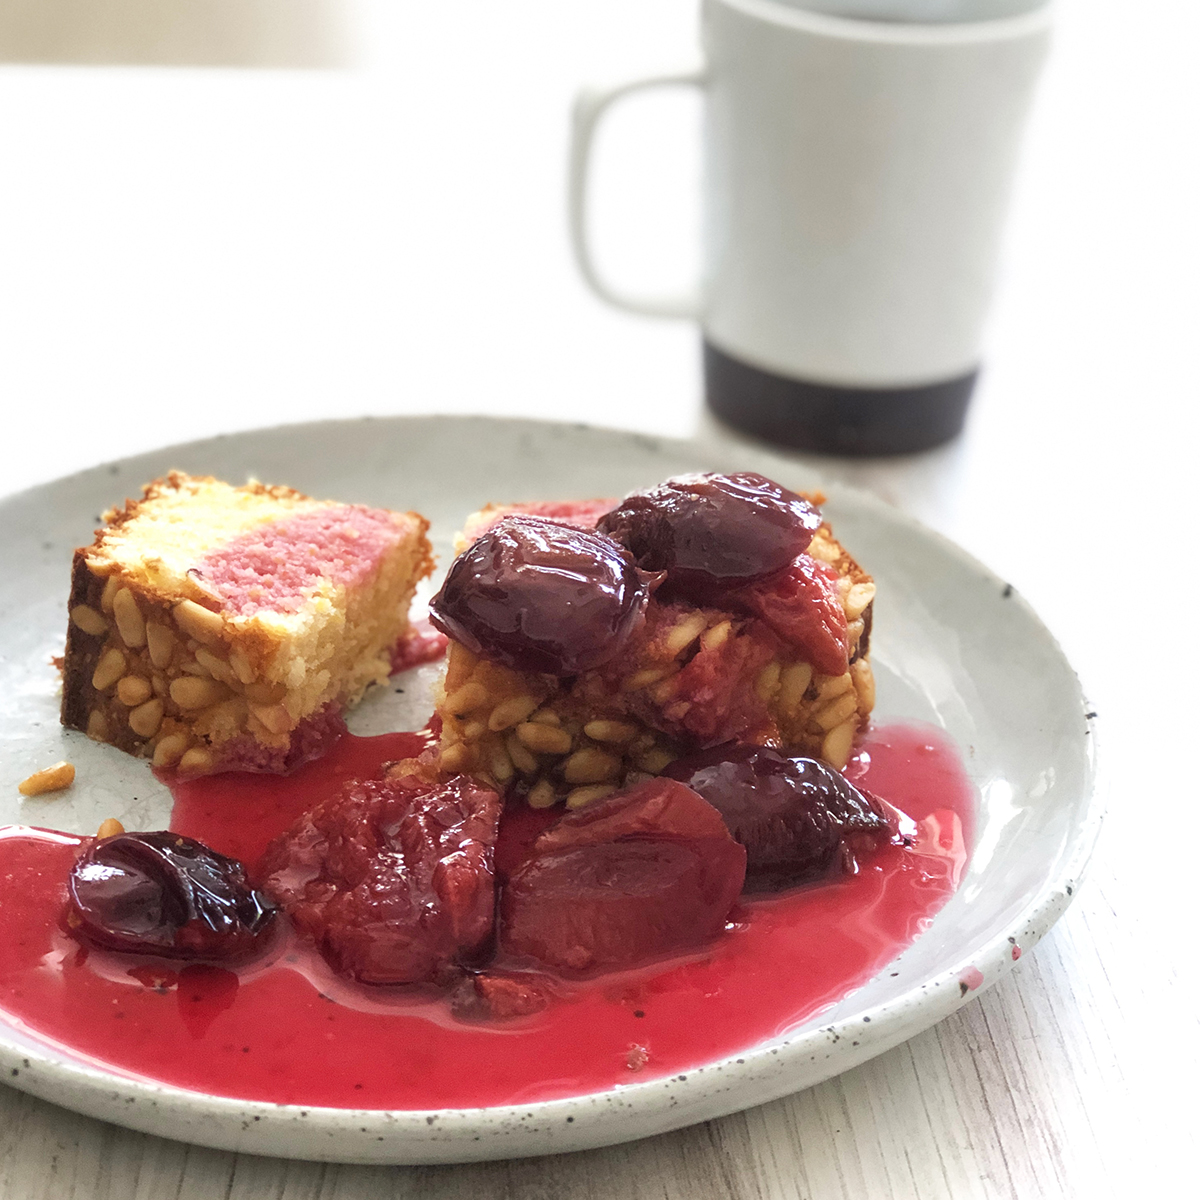 Corn Cake with Plum Compote